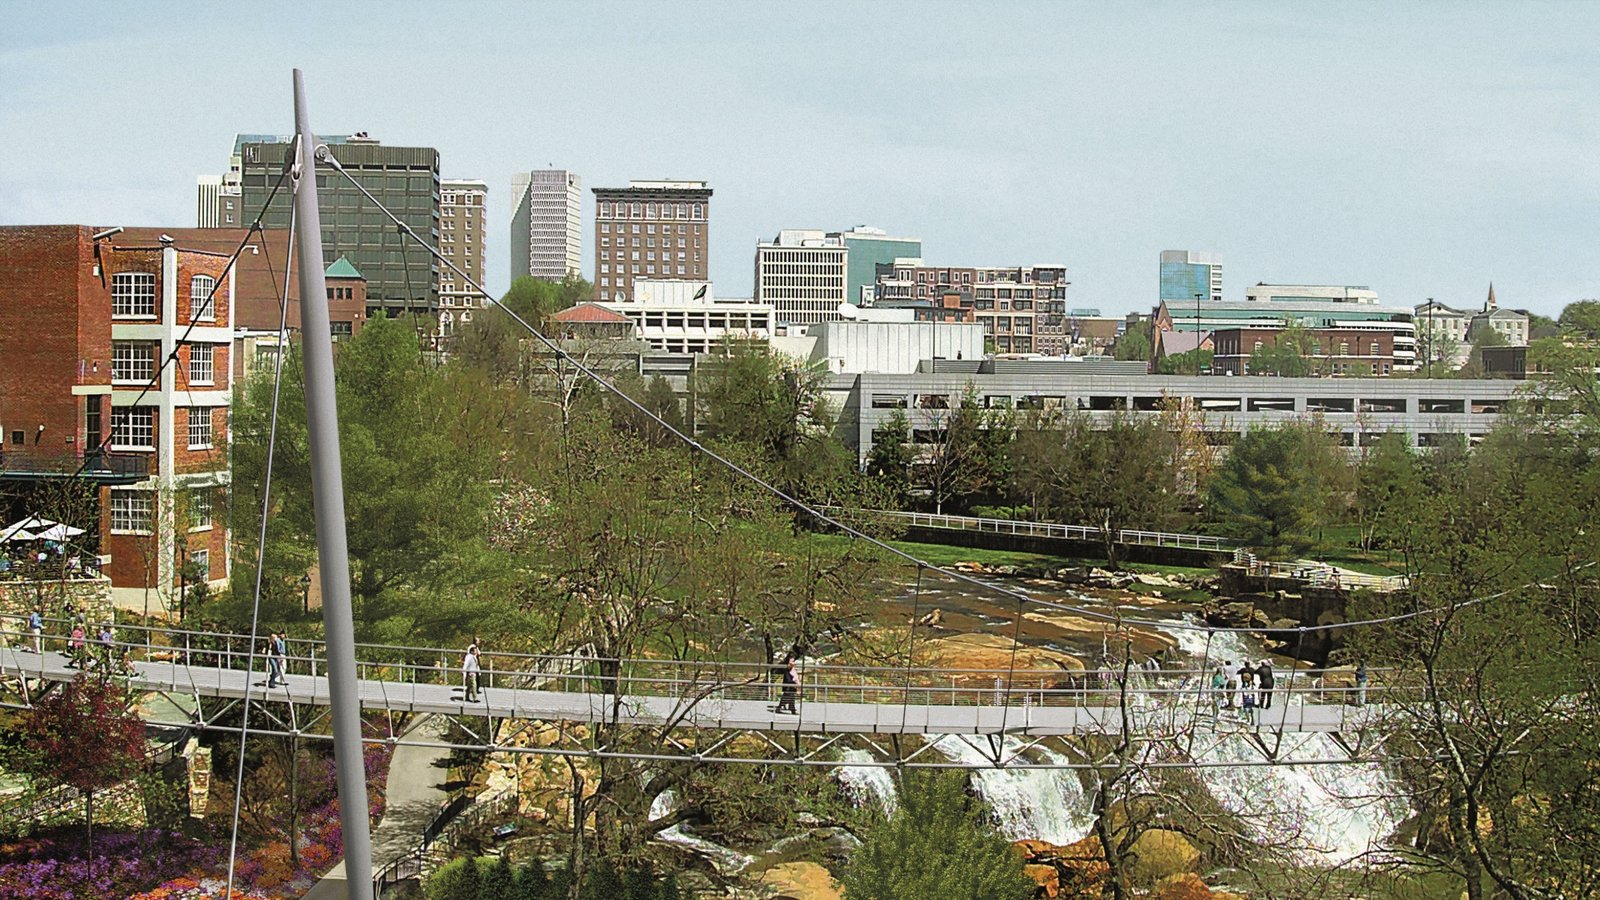 Attraction Pictures: View Images of Greenville - Spartanburg